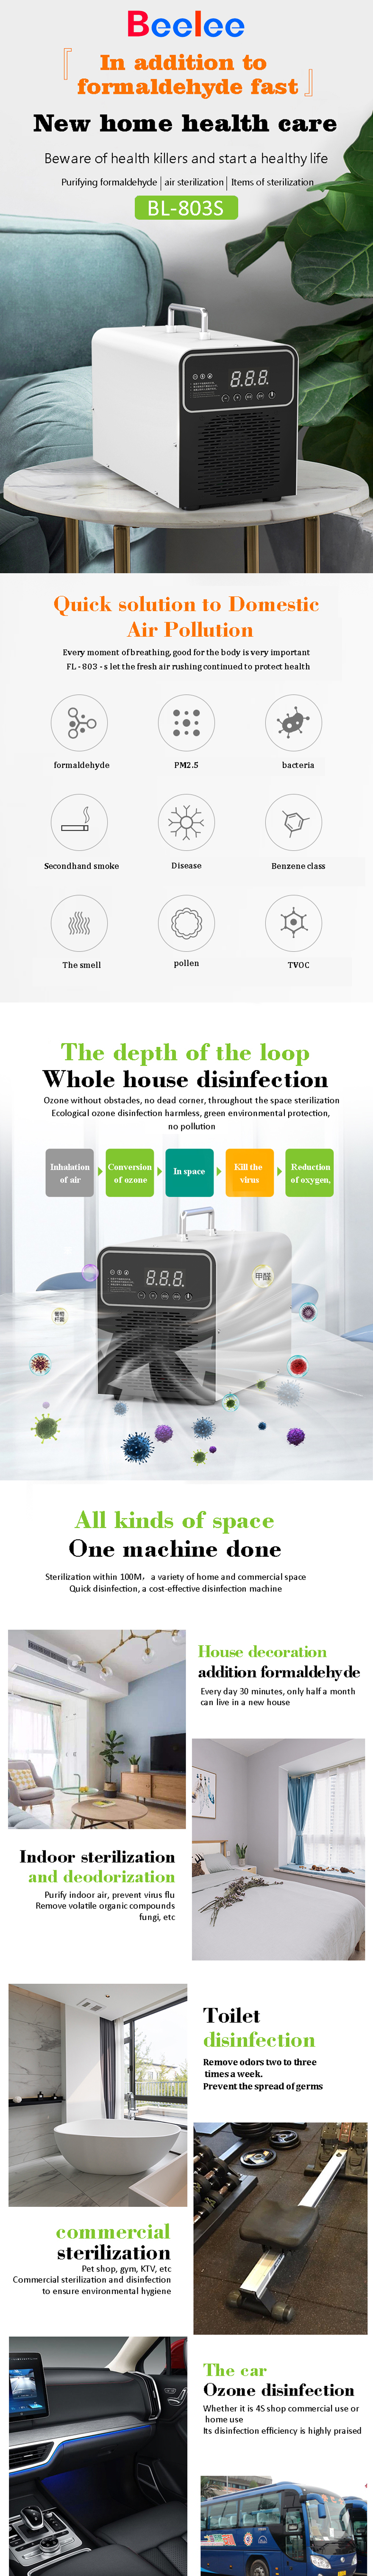 803S 3g/H Portable Ozone disinfection Ozone disinfection and ozone sanitization